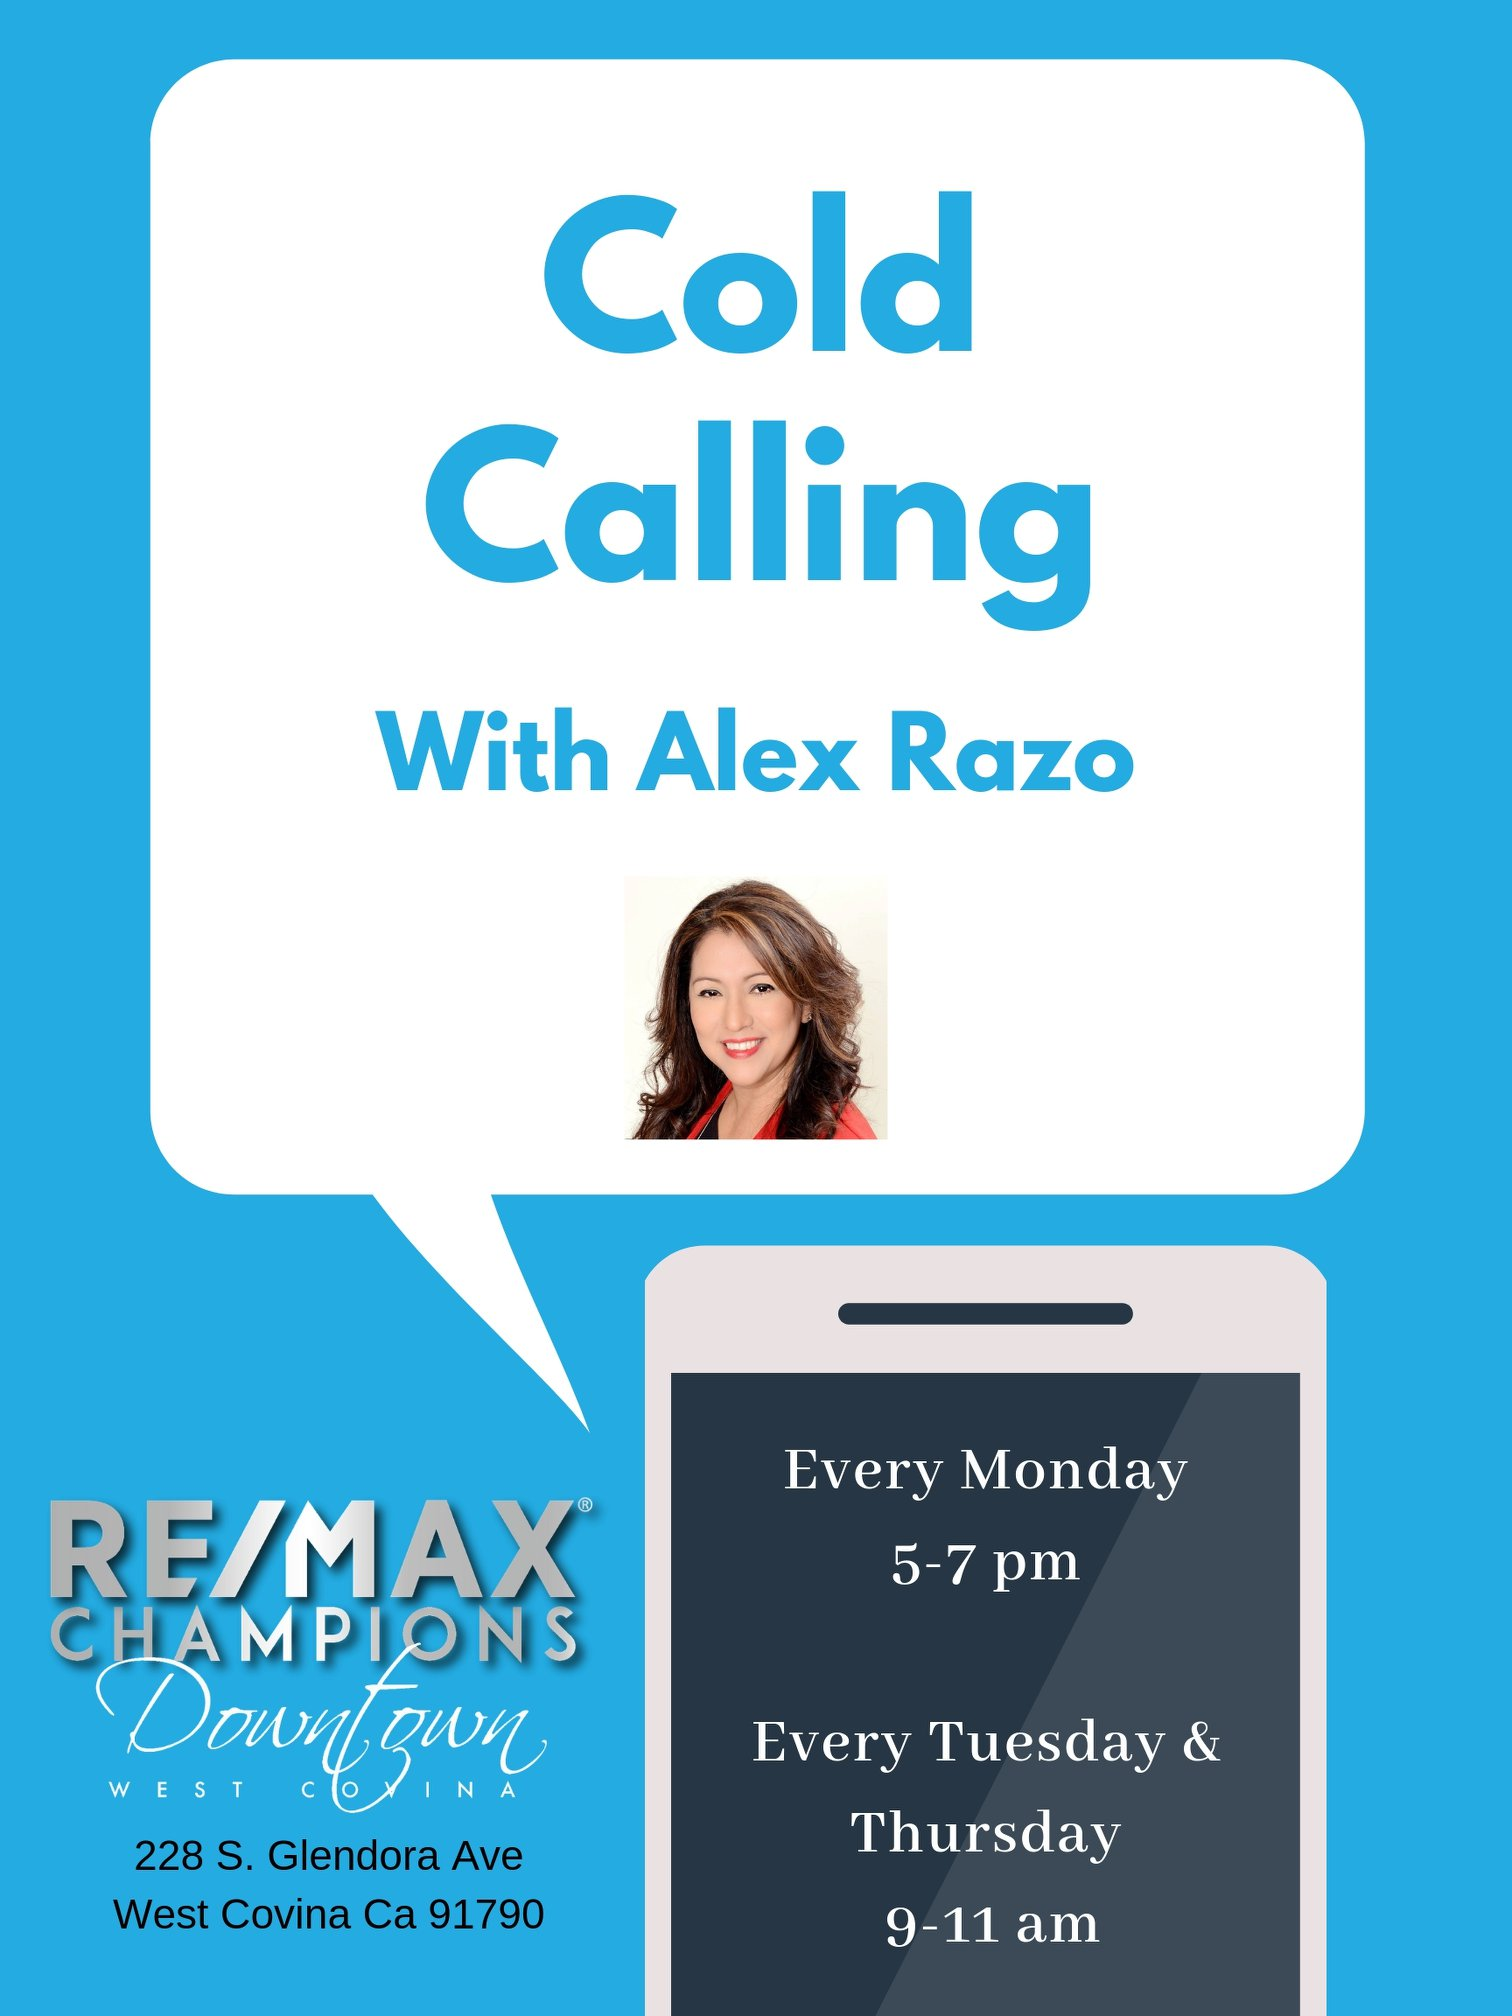 Cold Calling with Alex Razo